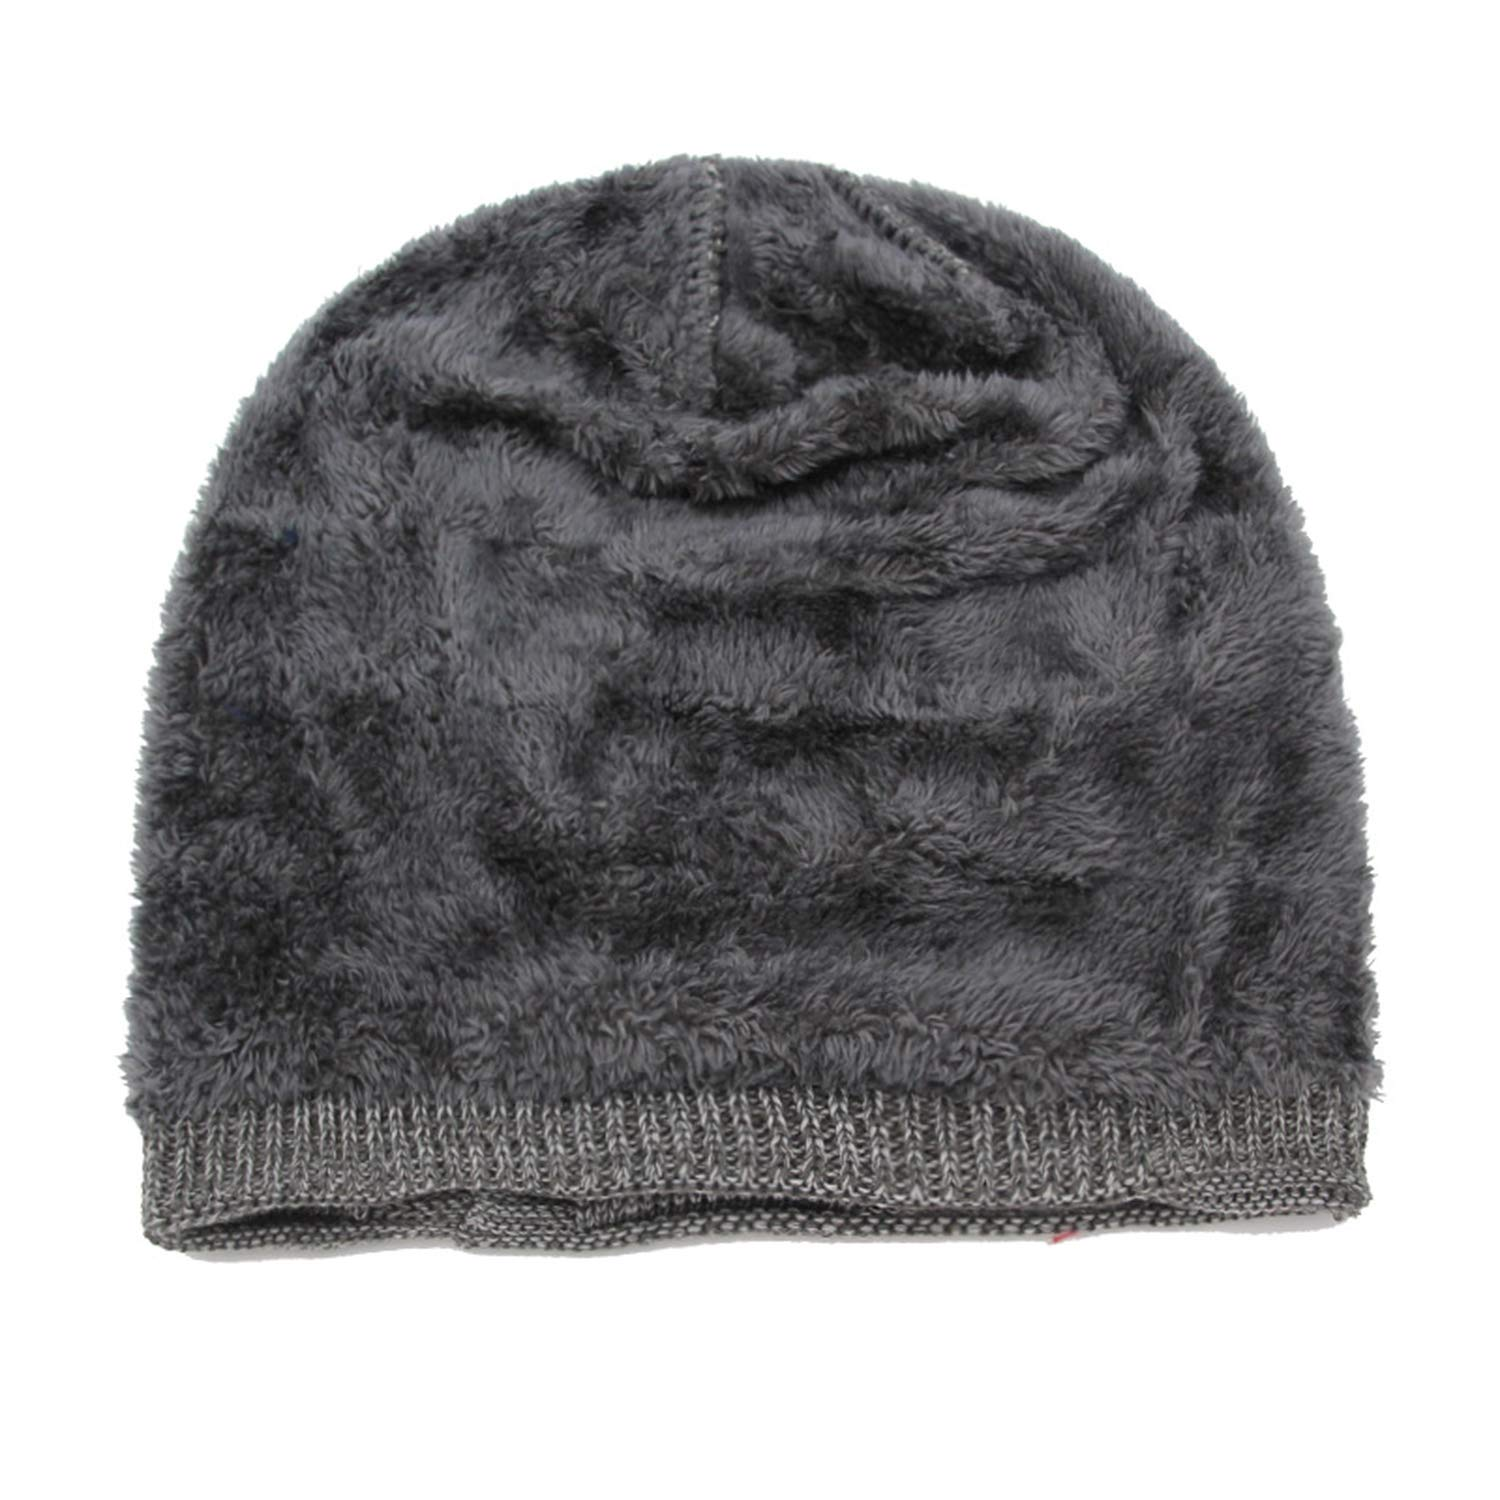 ANDERDM Knitted Hat Winter Hats for Women Men Beanie Baggy Male Gorros Bonnet Warm Caps Fashion Thick Skullies Hats